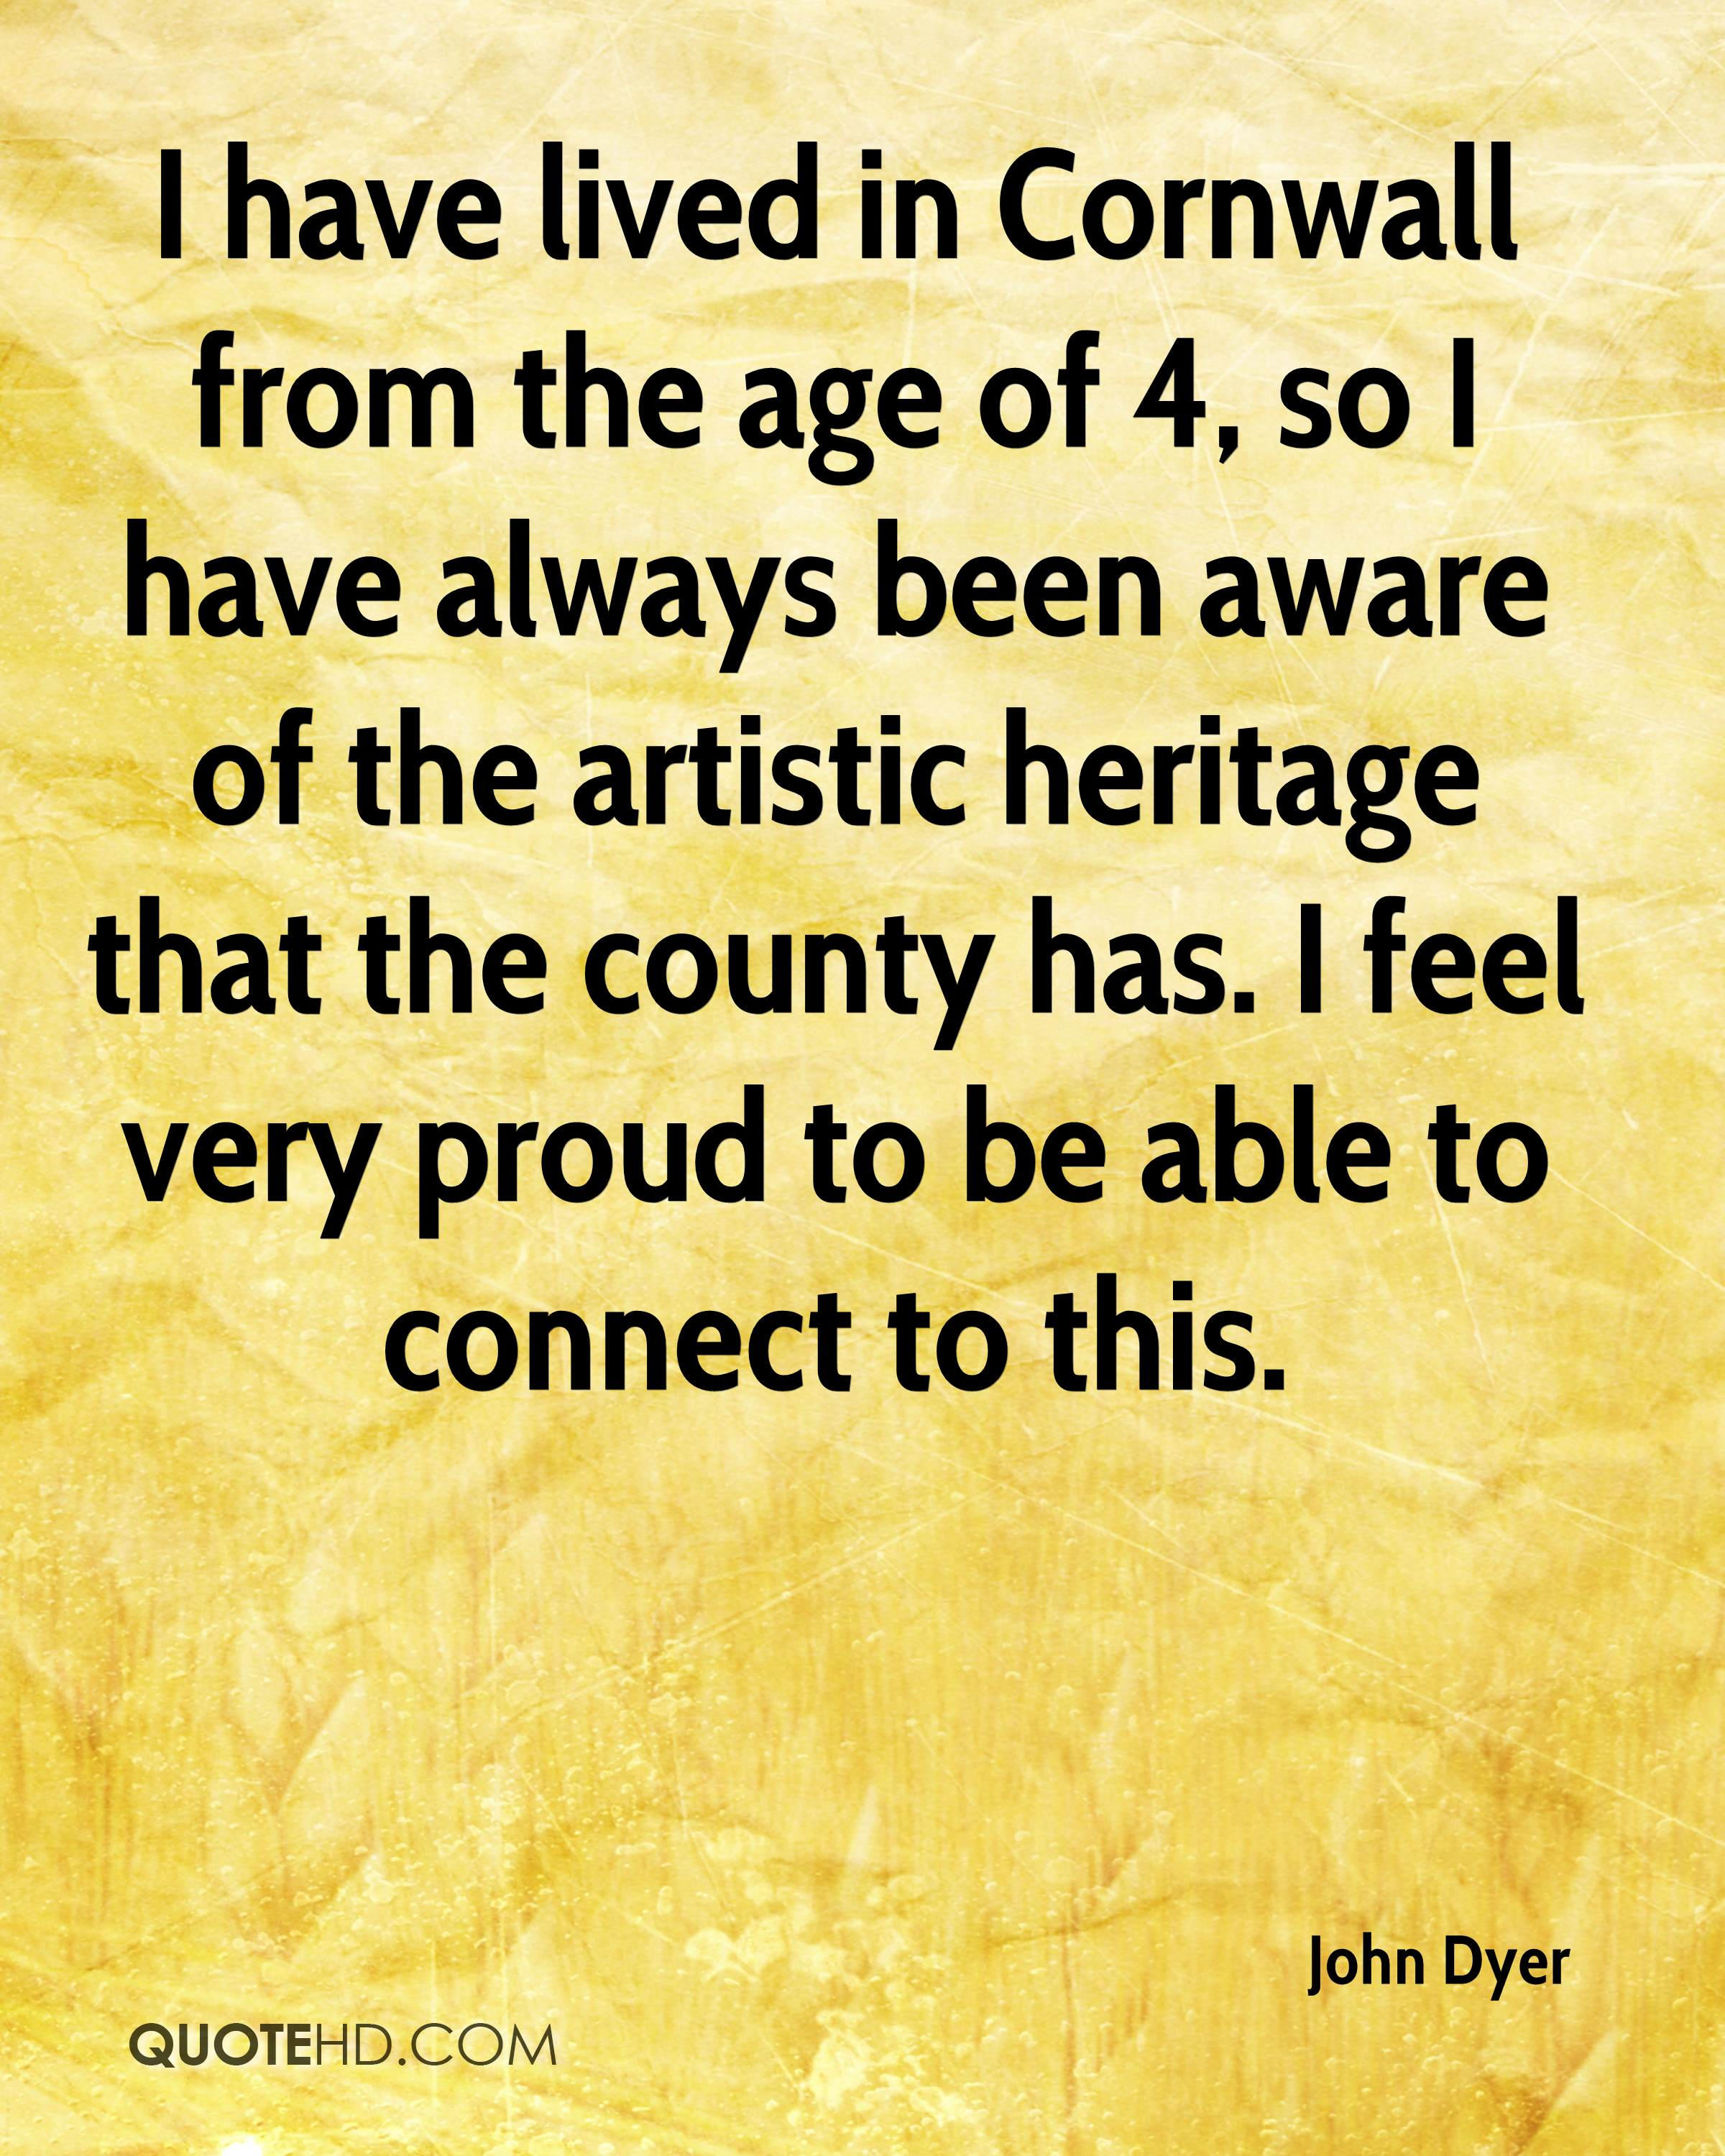 I have lived in Cornwall from the age of 4, so I have always been aware of the artistic heritage that the county has. I feel very proud to be able to connect to this.